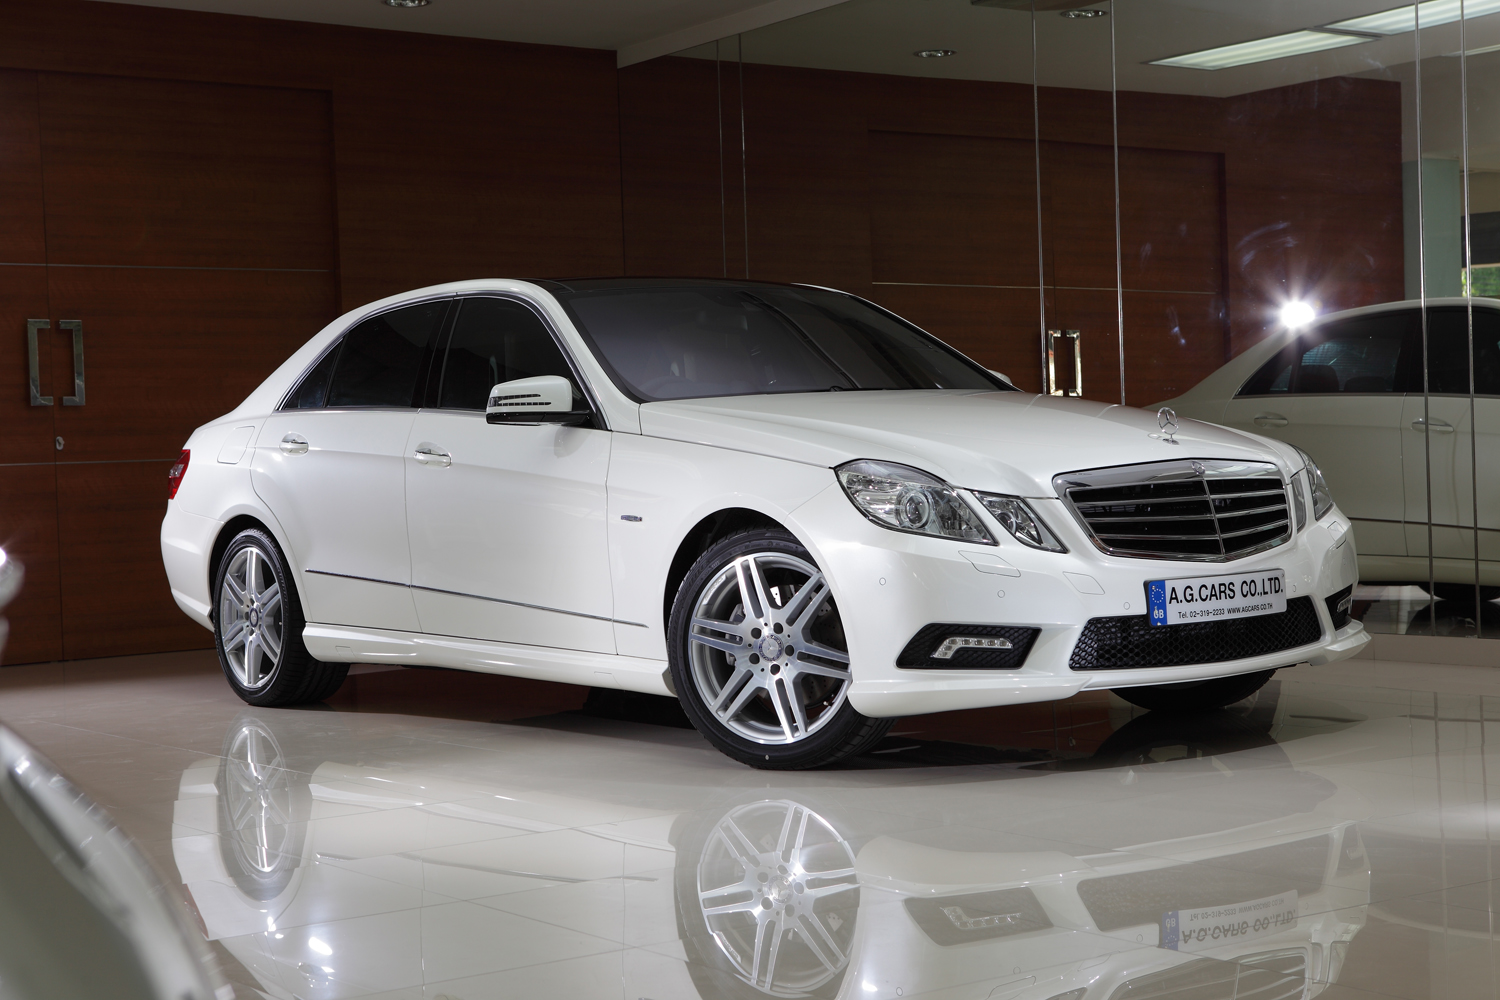 MERCEDES BENZ E250 CGI SALOON